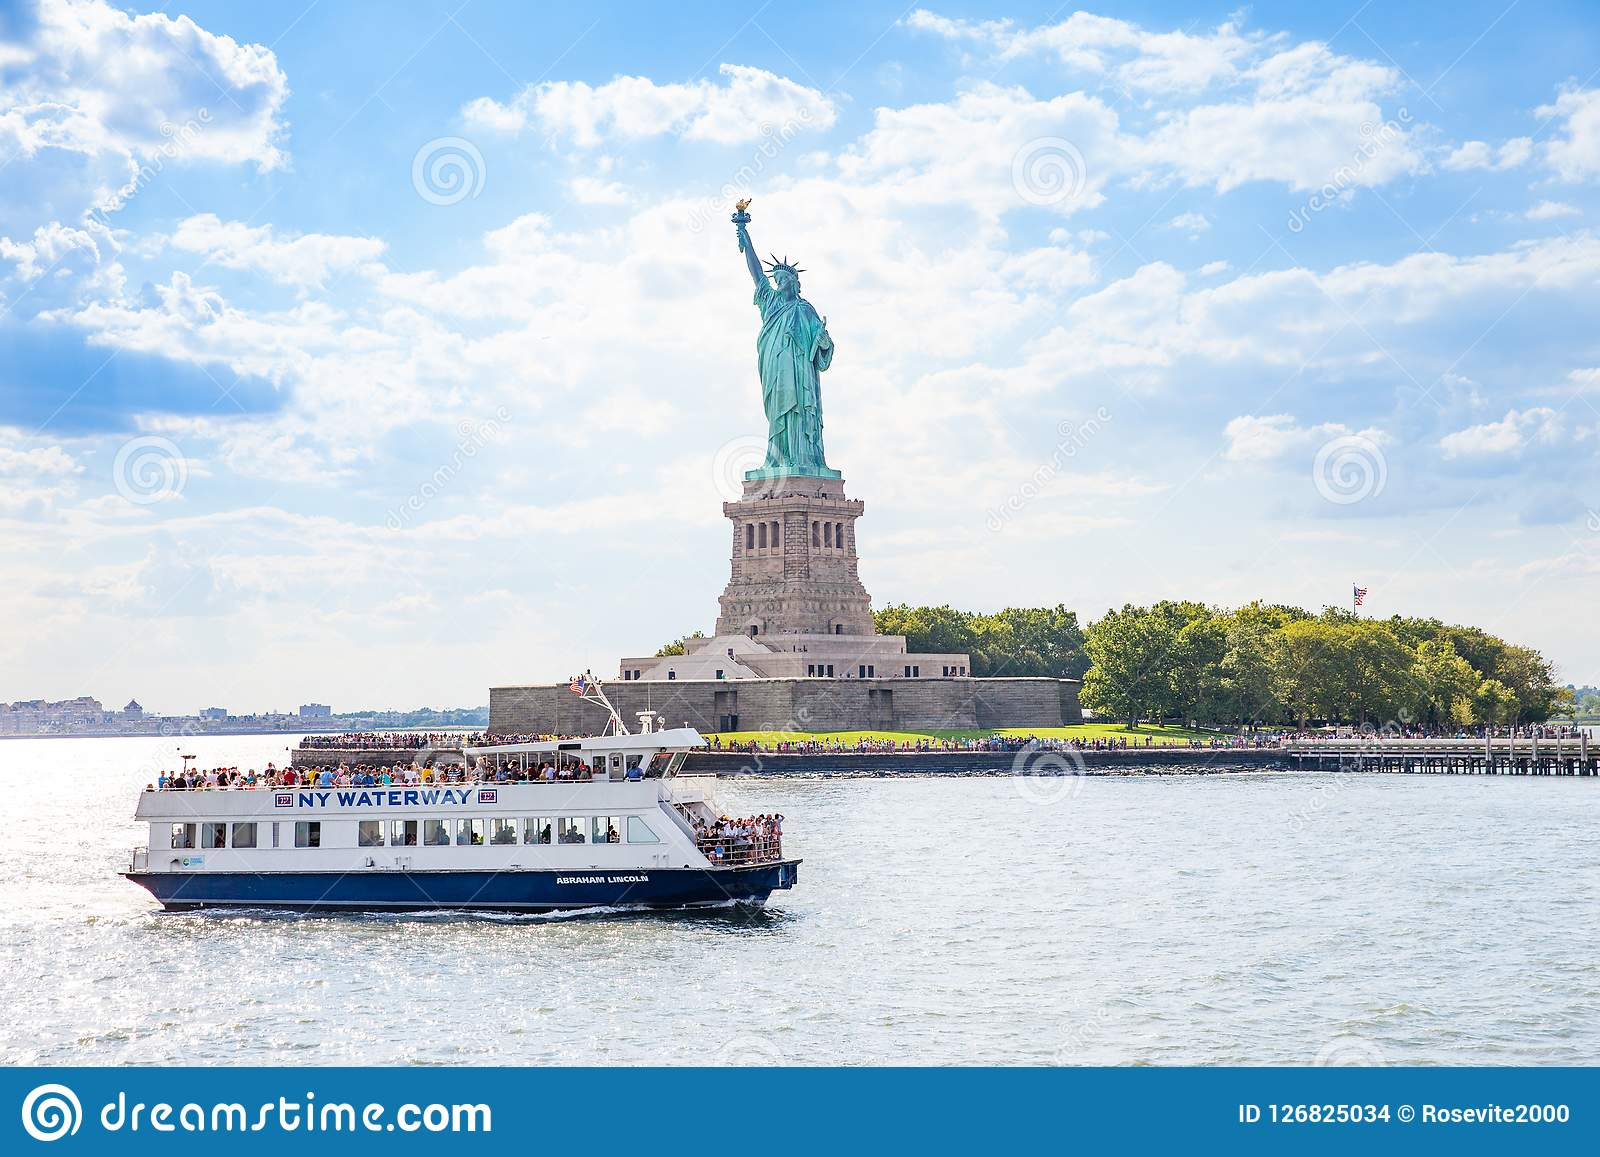 Ferry Boat That Takes Passenger To The Statue Of Liberty